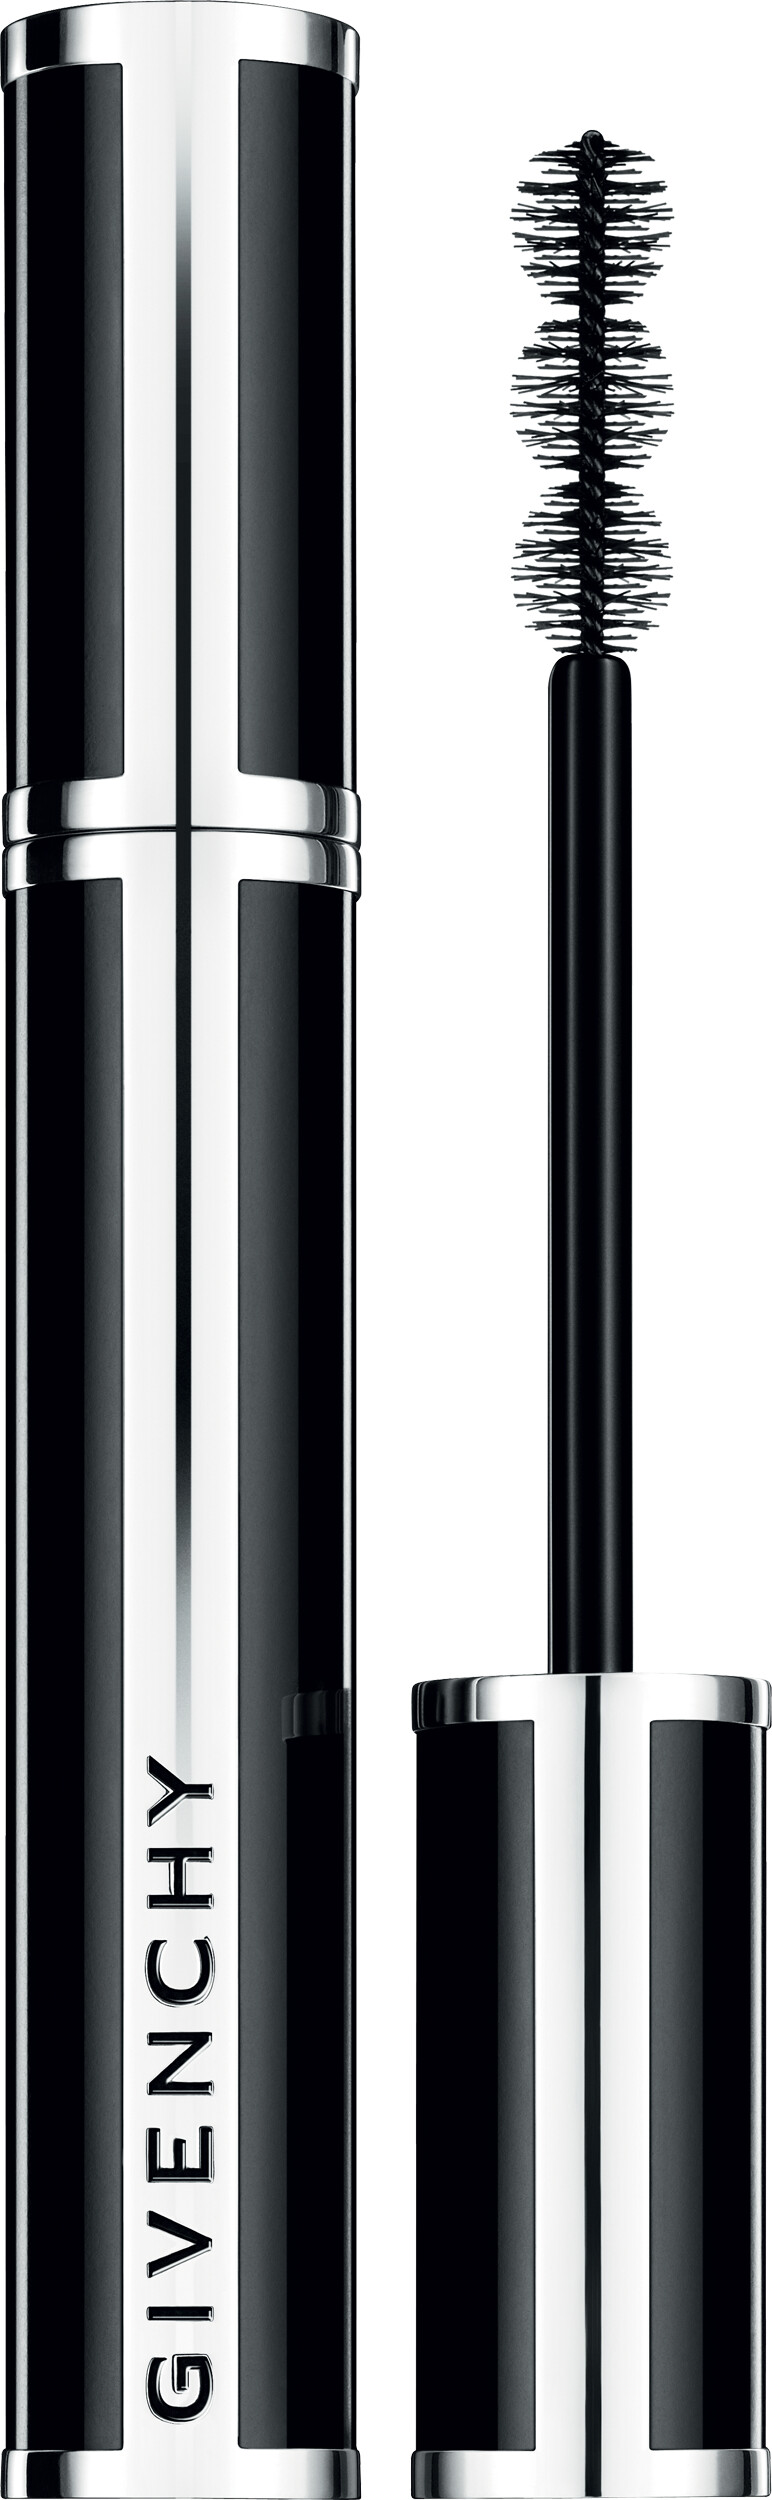 92c37106230 GIVENCHY Noir Couture 4 in 1 Mascara Volume, Length, Curl & Care 8g ...